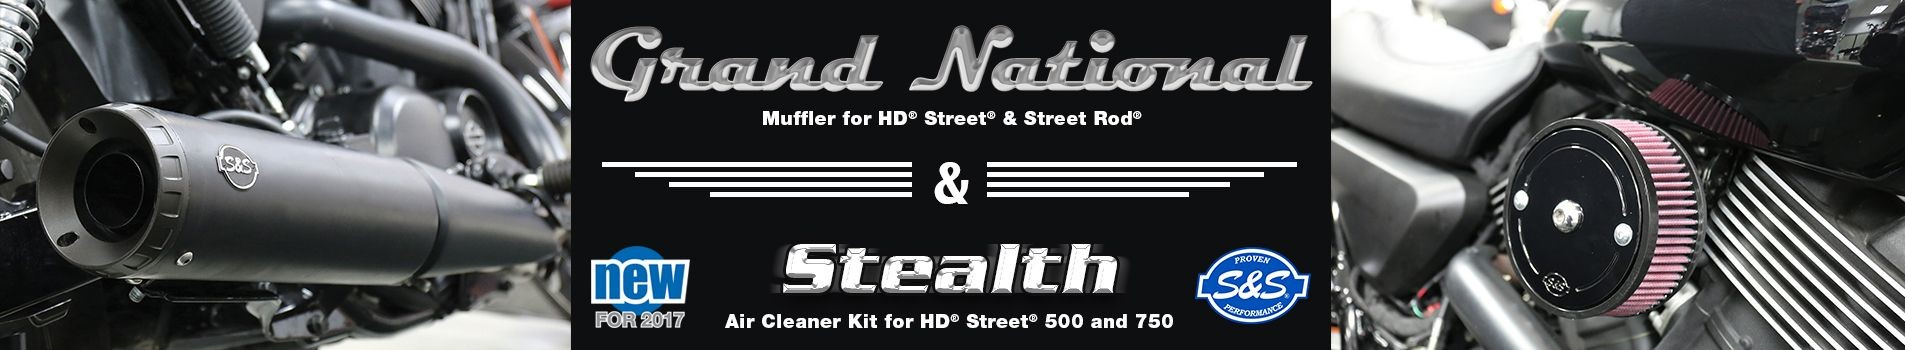 Grand National Mufflers and Stealth Air Cleaner for HD® Street® and Street Rod™